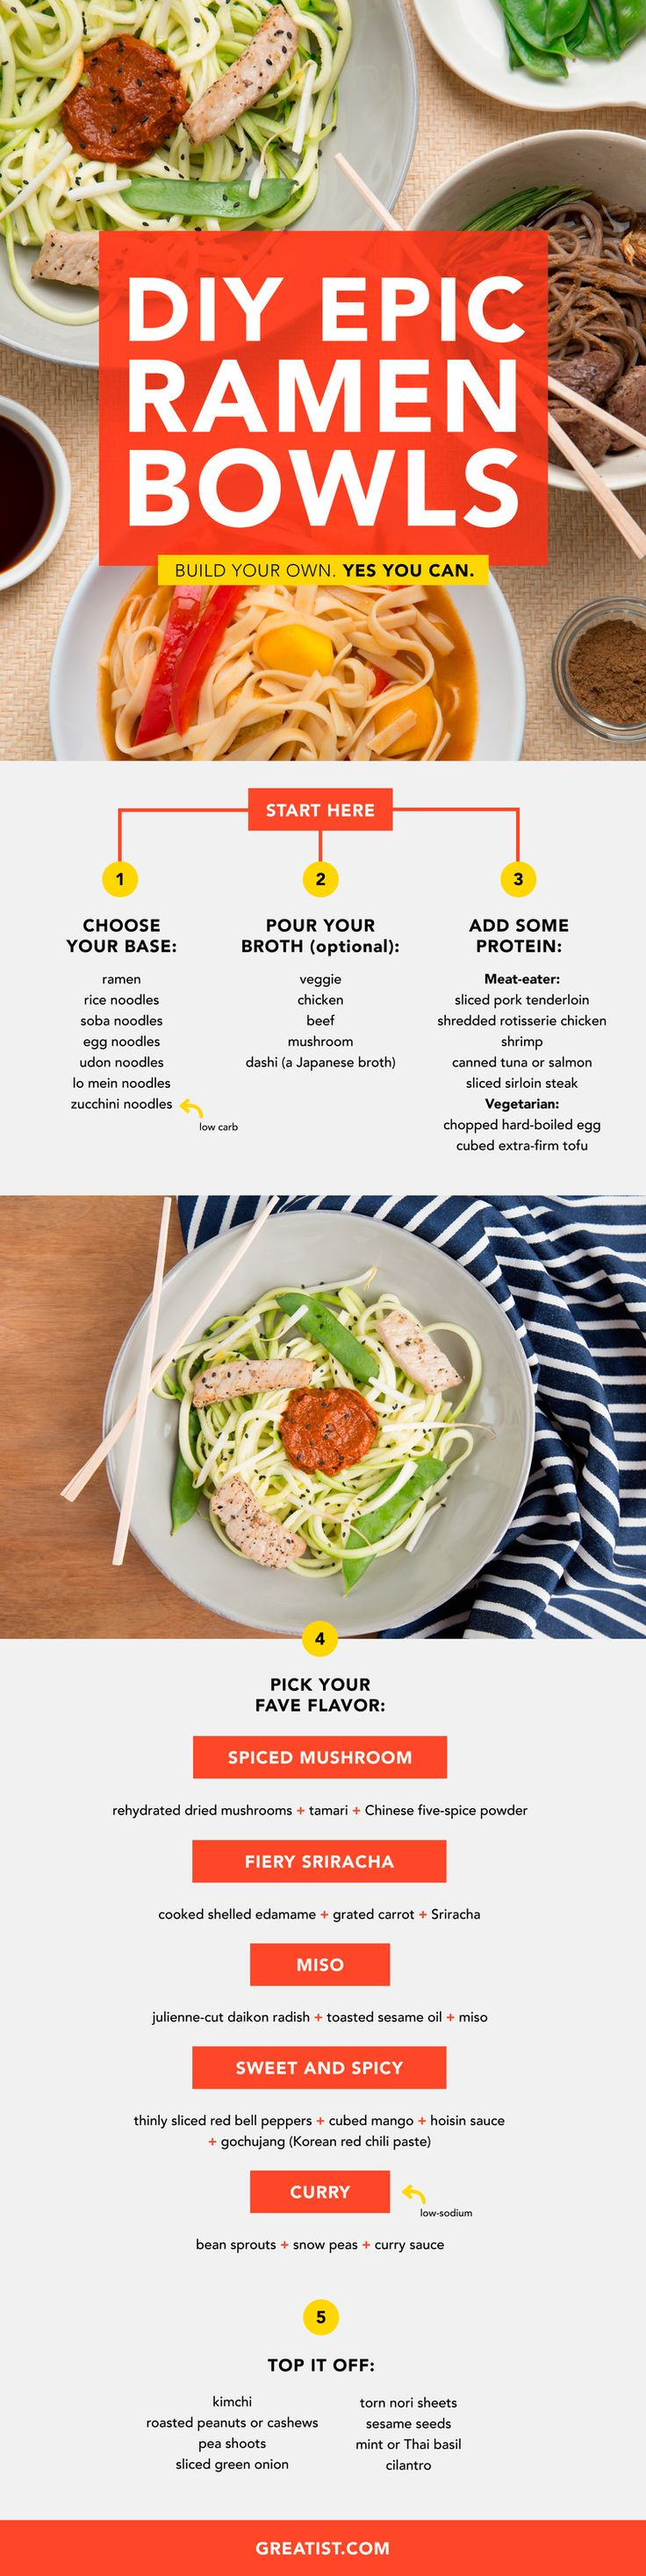 How to Make Epic Ramen Bowls at Home #ramen #recipe http://greatist.com/eat/how-to-make-healthy-ramen-bowl